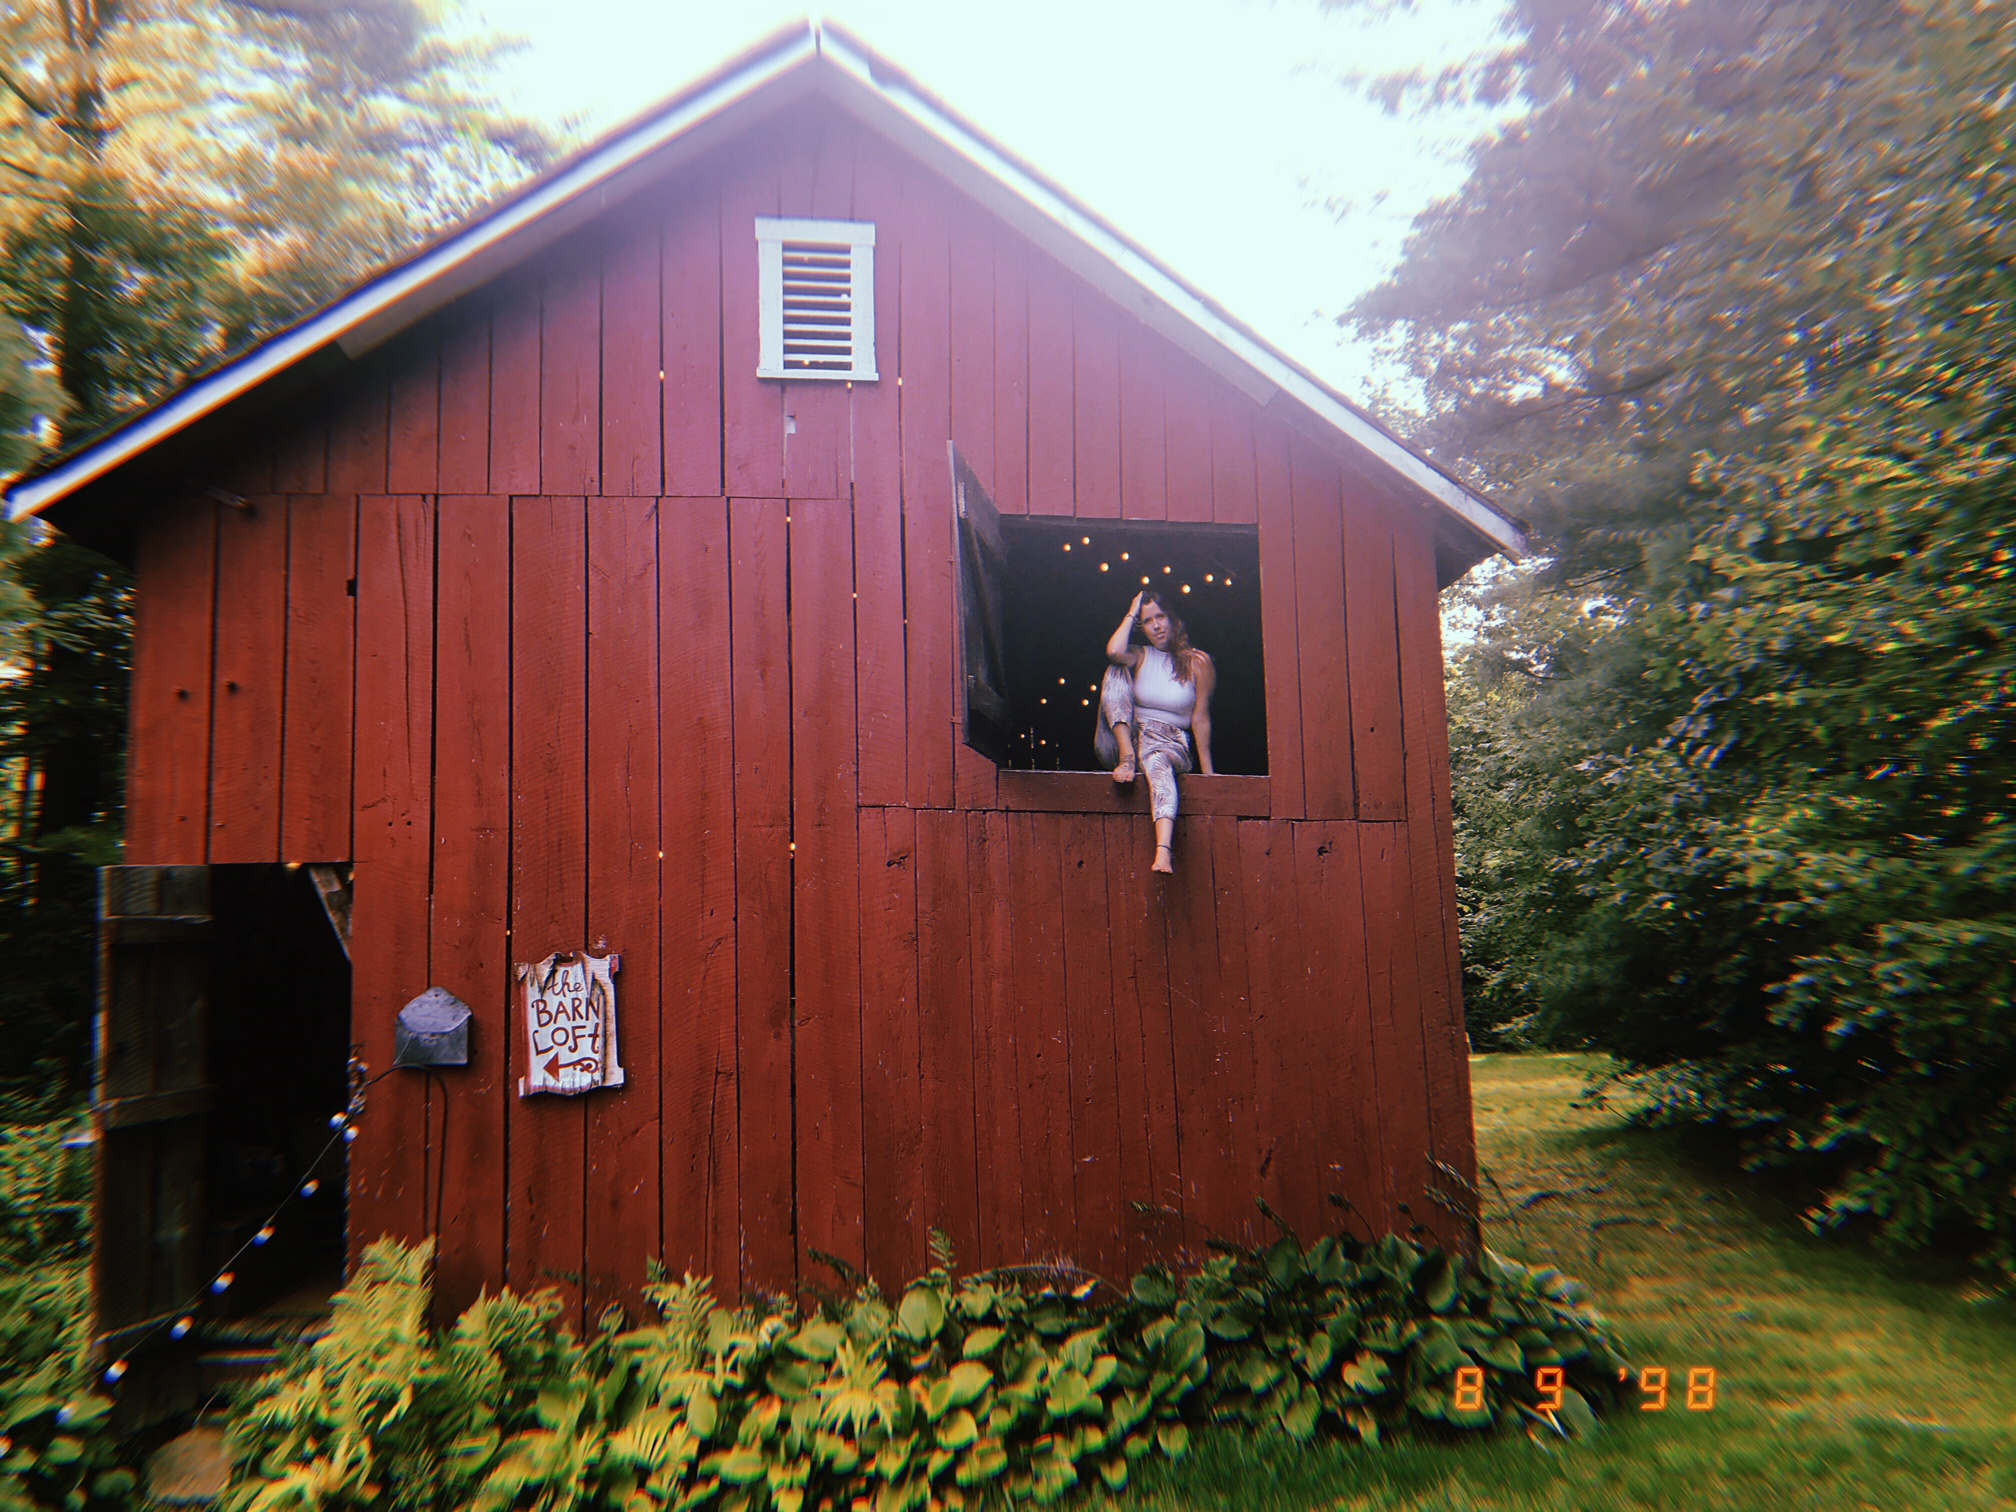 The Barn Loft  located in Fayetteville, WV